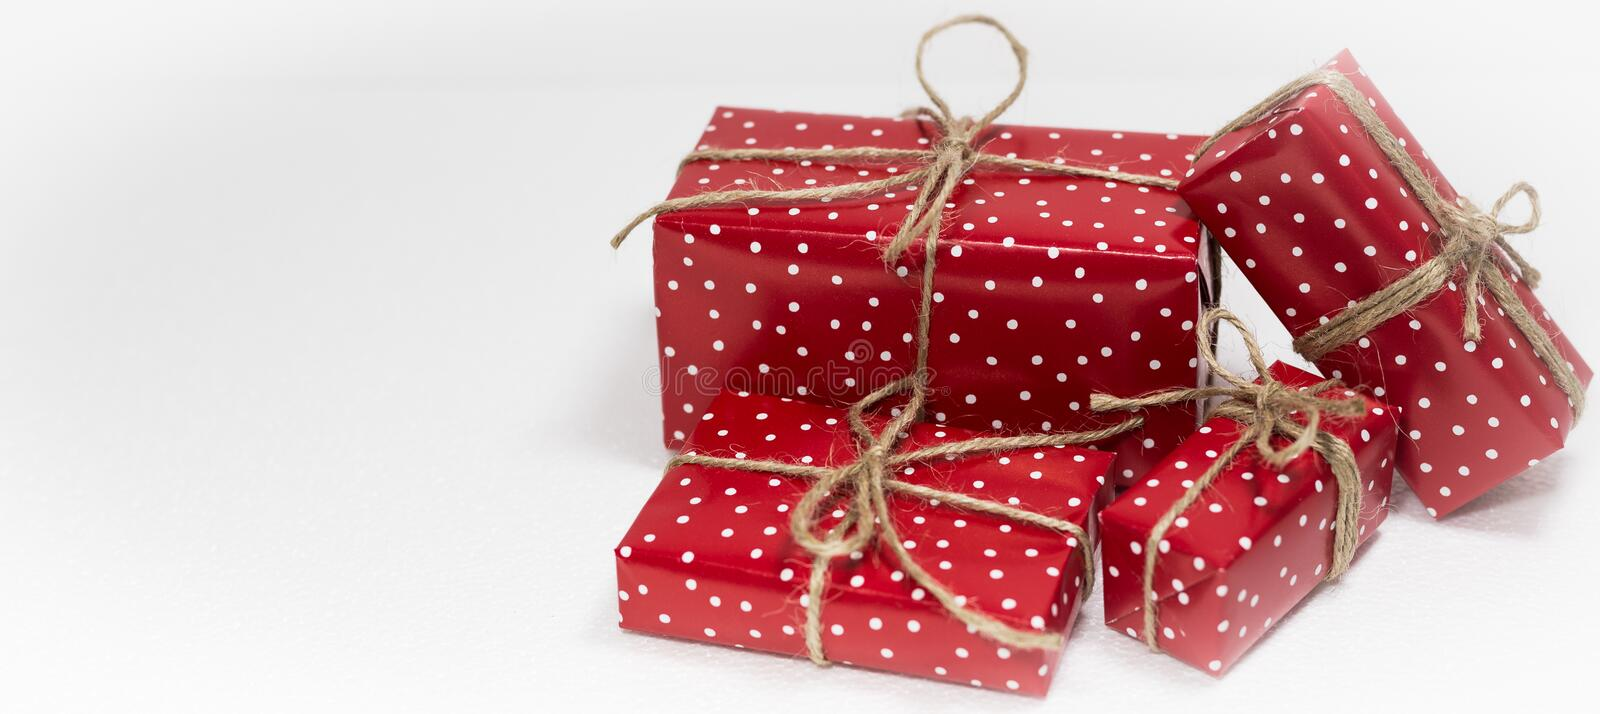 Christmas gift boxes on white background with empty space for text royalty free stock photo